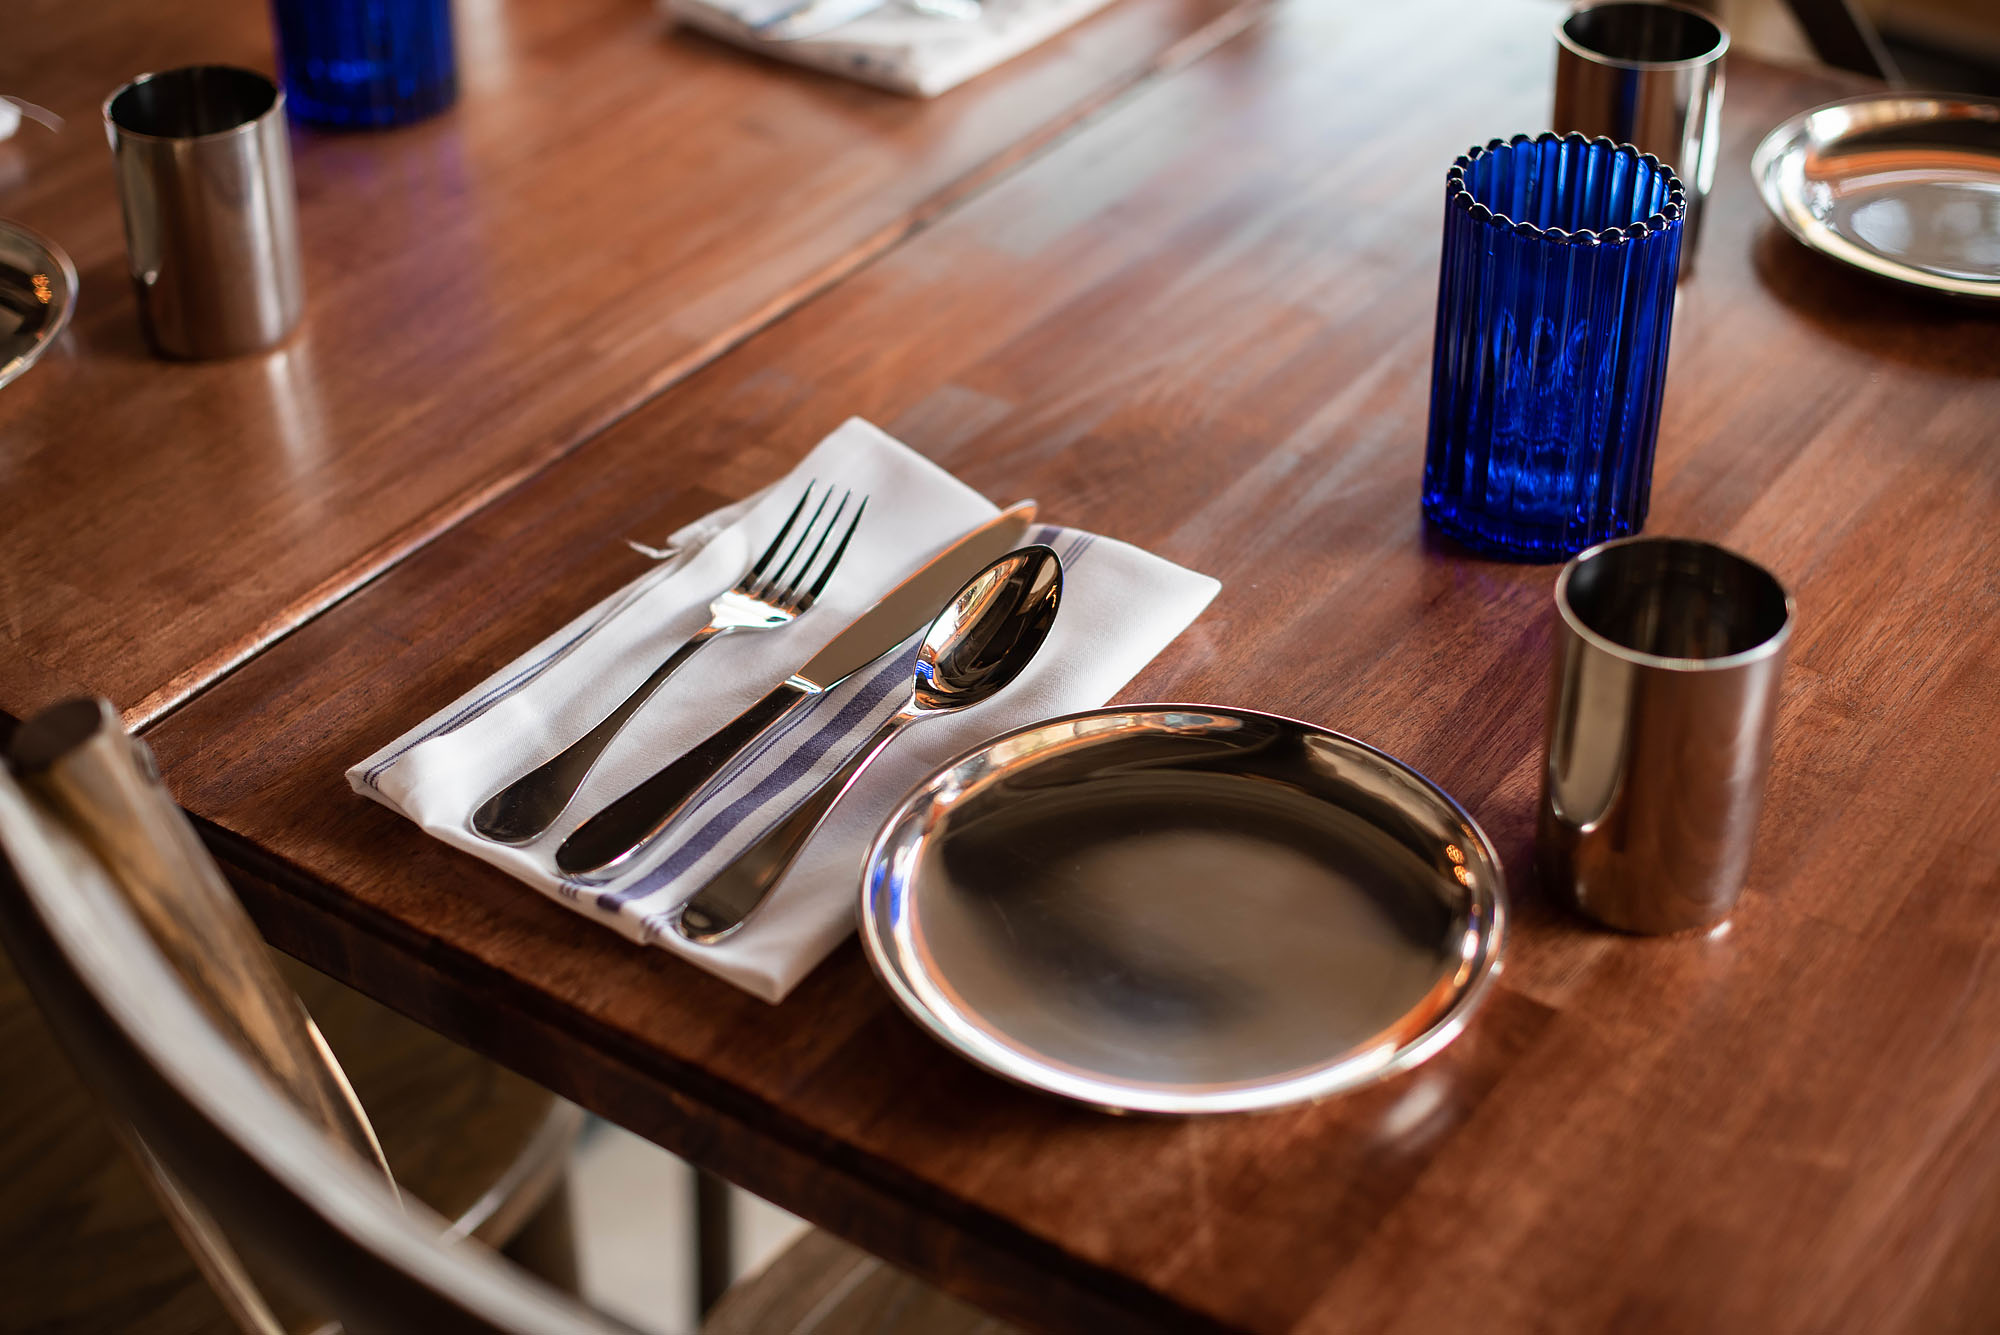 Simple metal plates on a wooden restaurant table.